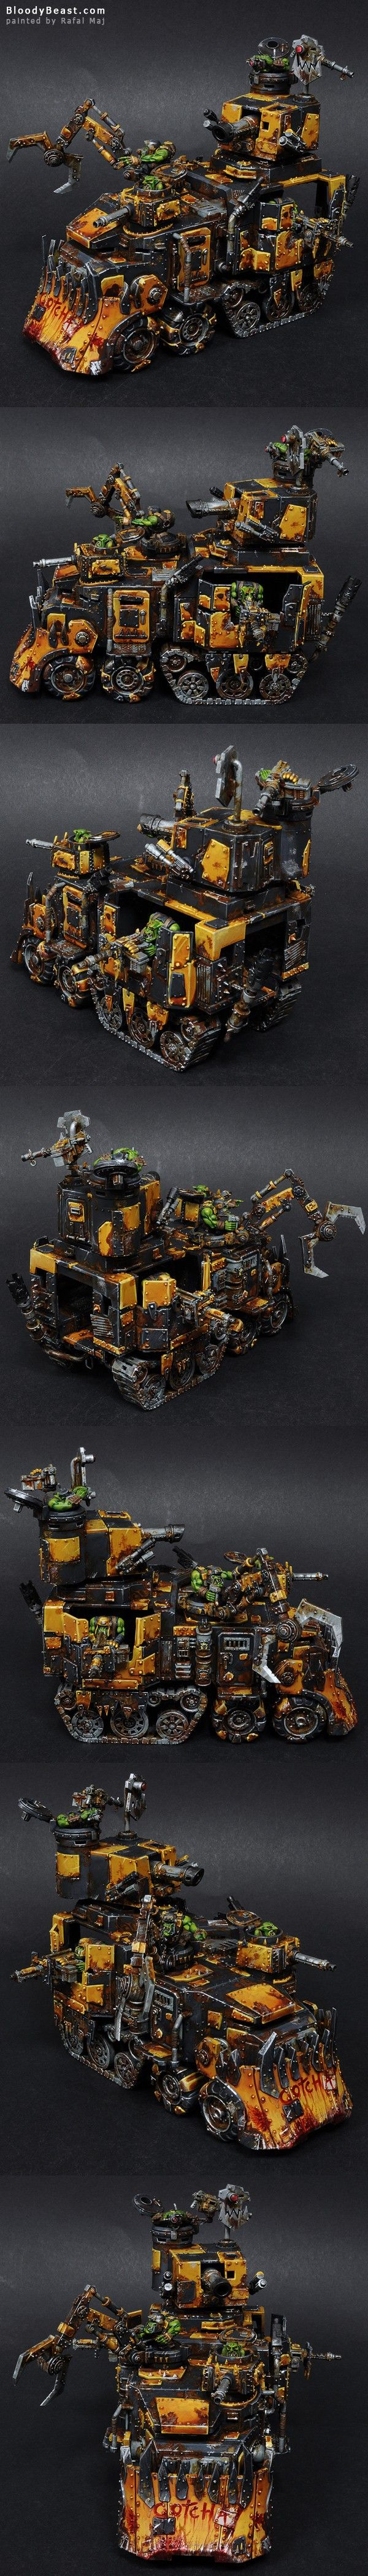 Ork Battlewagon of the Bad Moons Tribe.